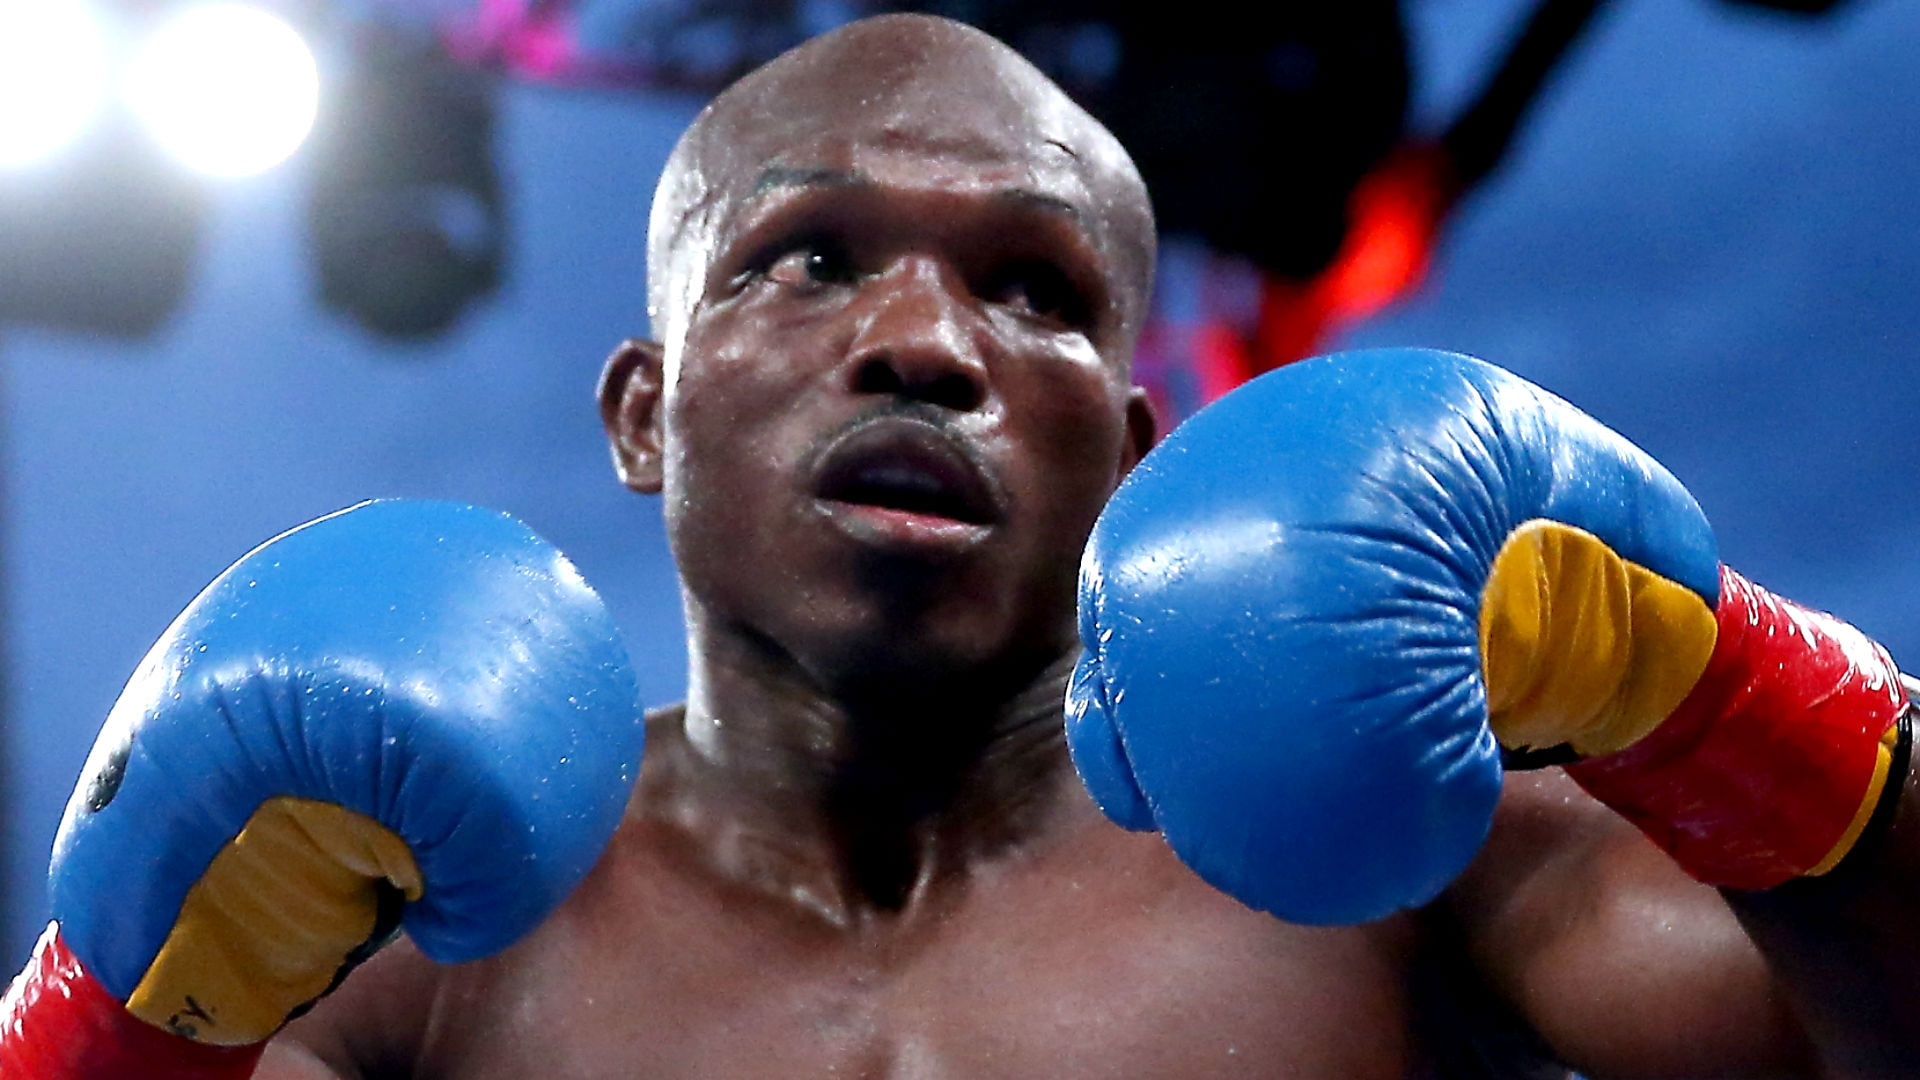 Timothy Bradley reveals harrowing encounter with police during ESPN boxing broadcast